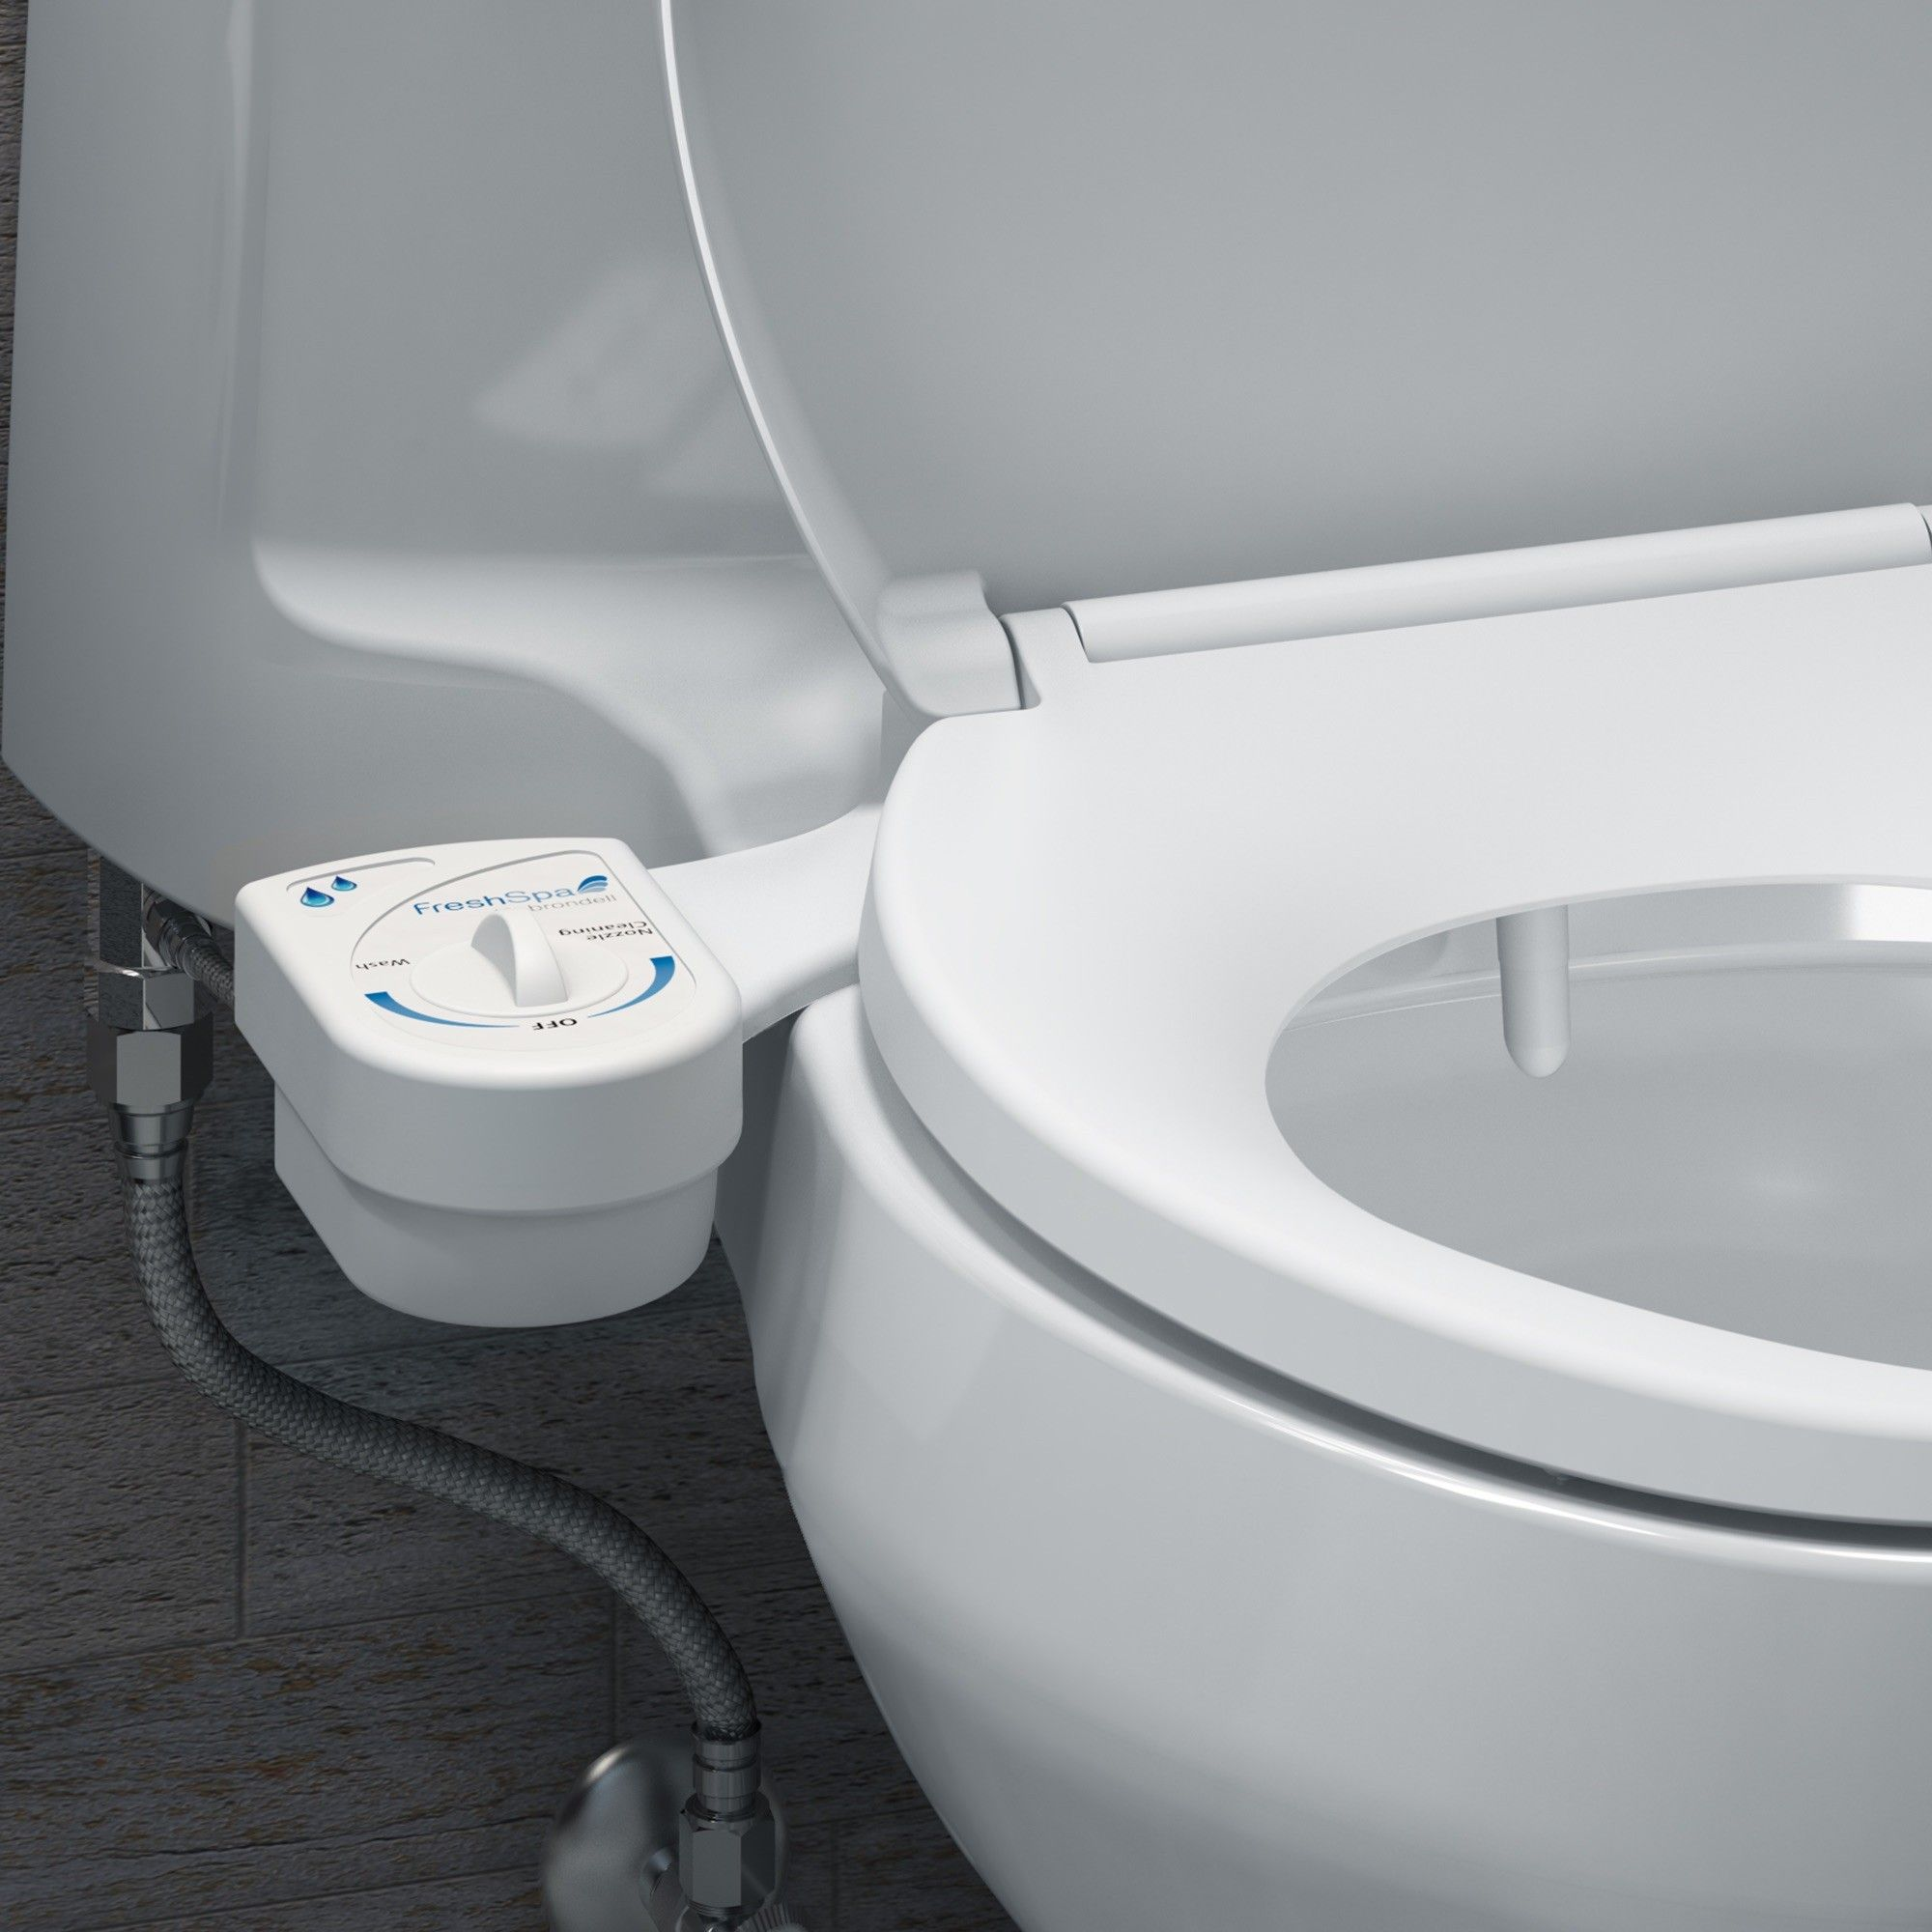 Freshspa Easy Bidet Toilet Attachment With Images Bidet Toilet